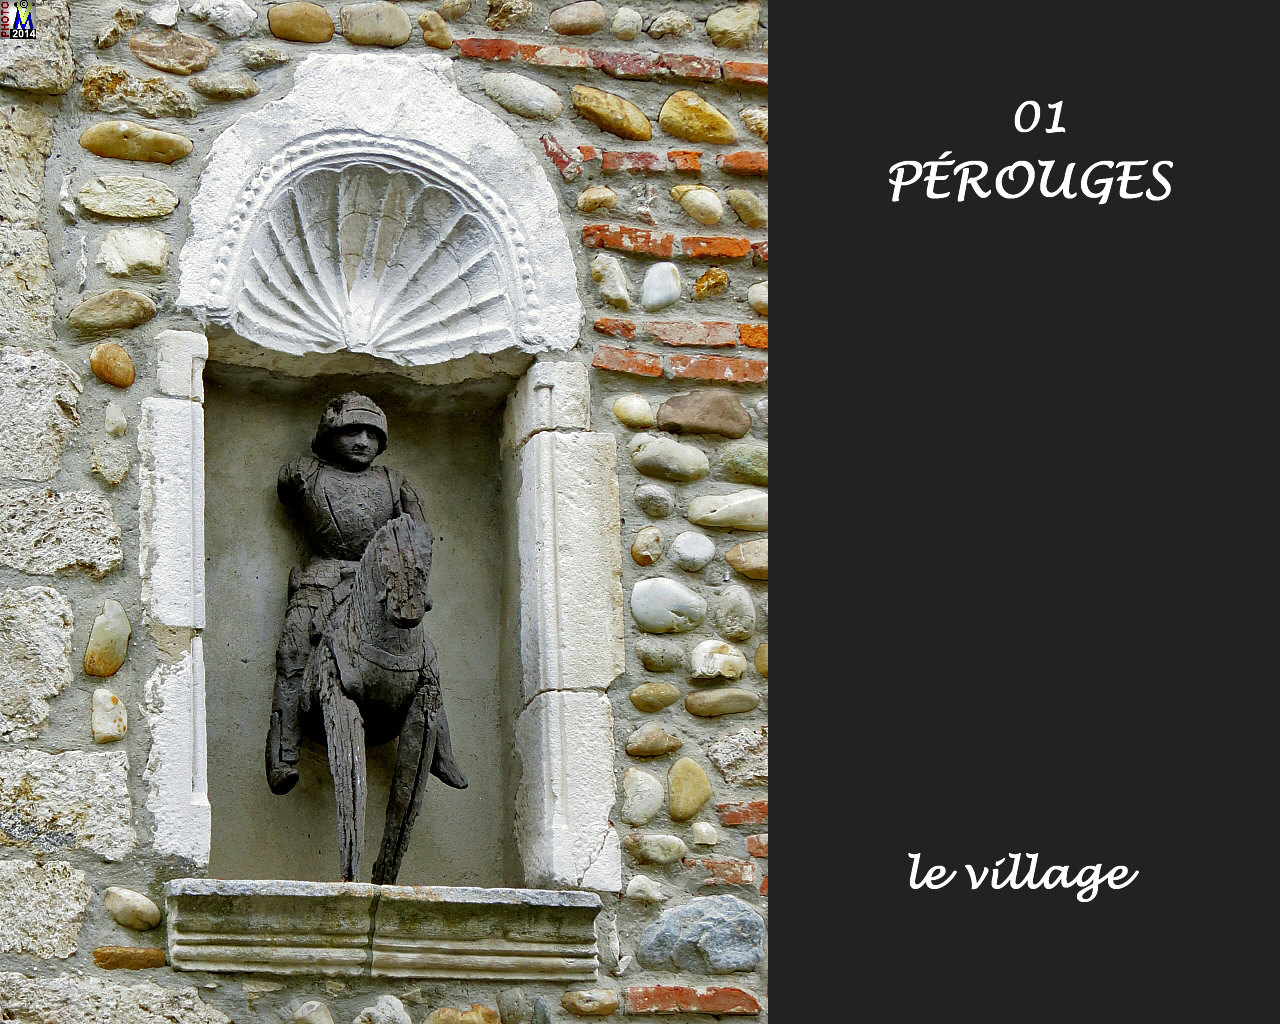 01PEROUGES_village_140.jpg